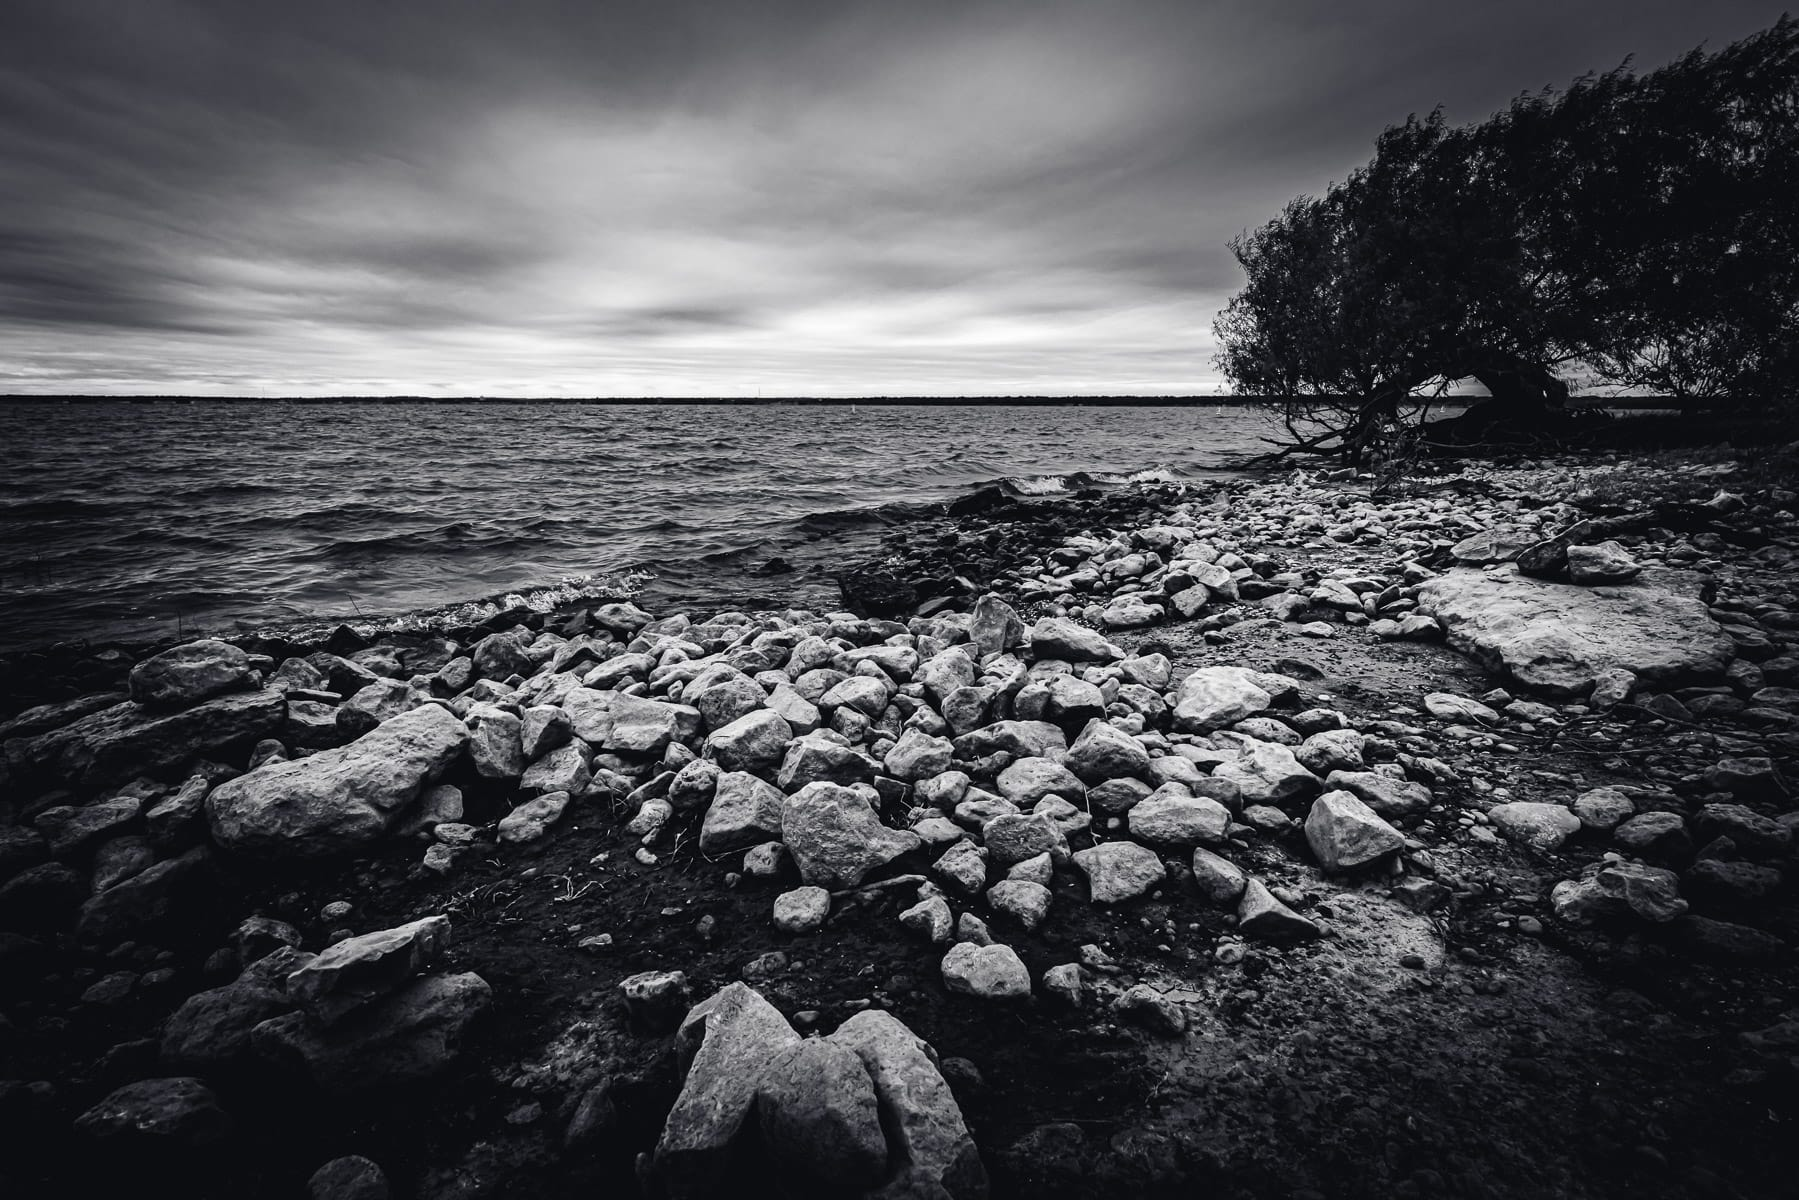 The rocky shore of Texas' Lake Whitney.